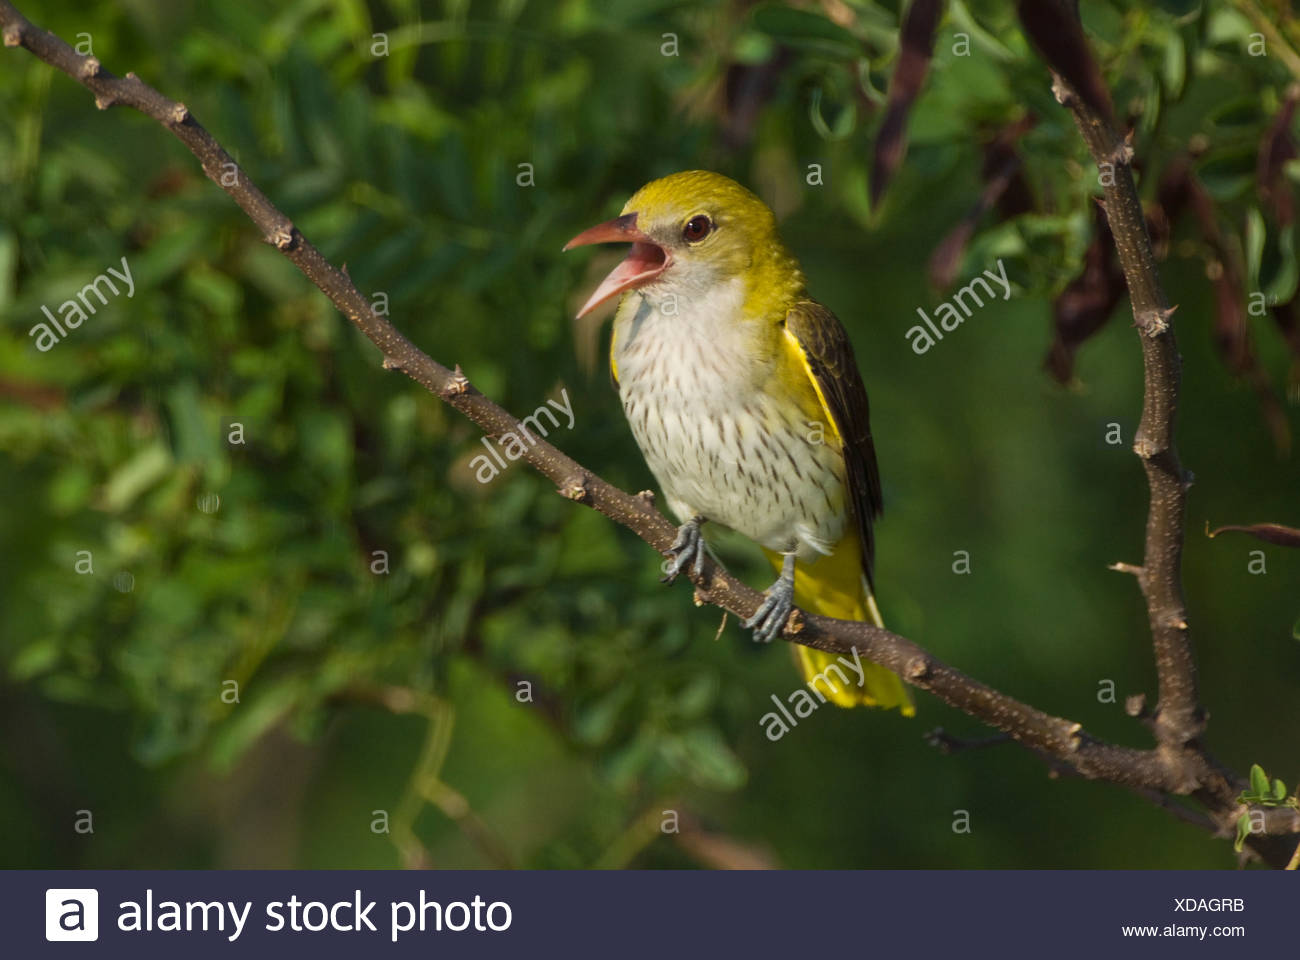 Europe, Hungary, Golden oriole bird singing on branch, close-up - Stock Image